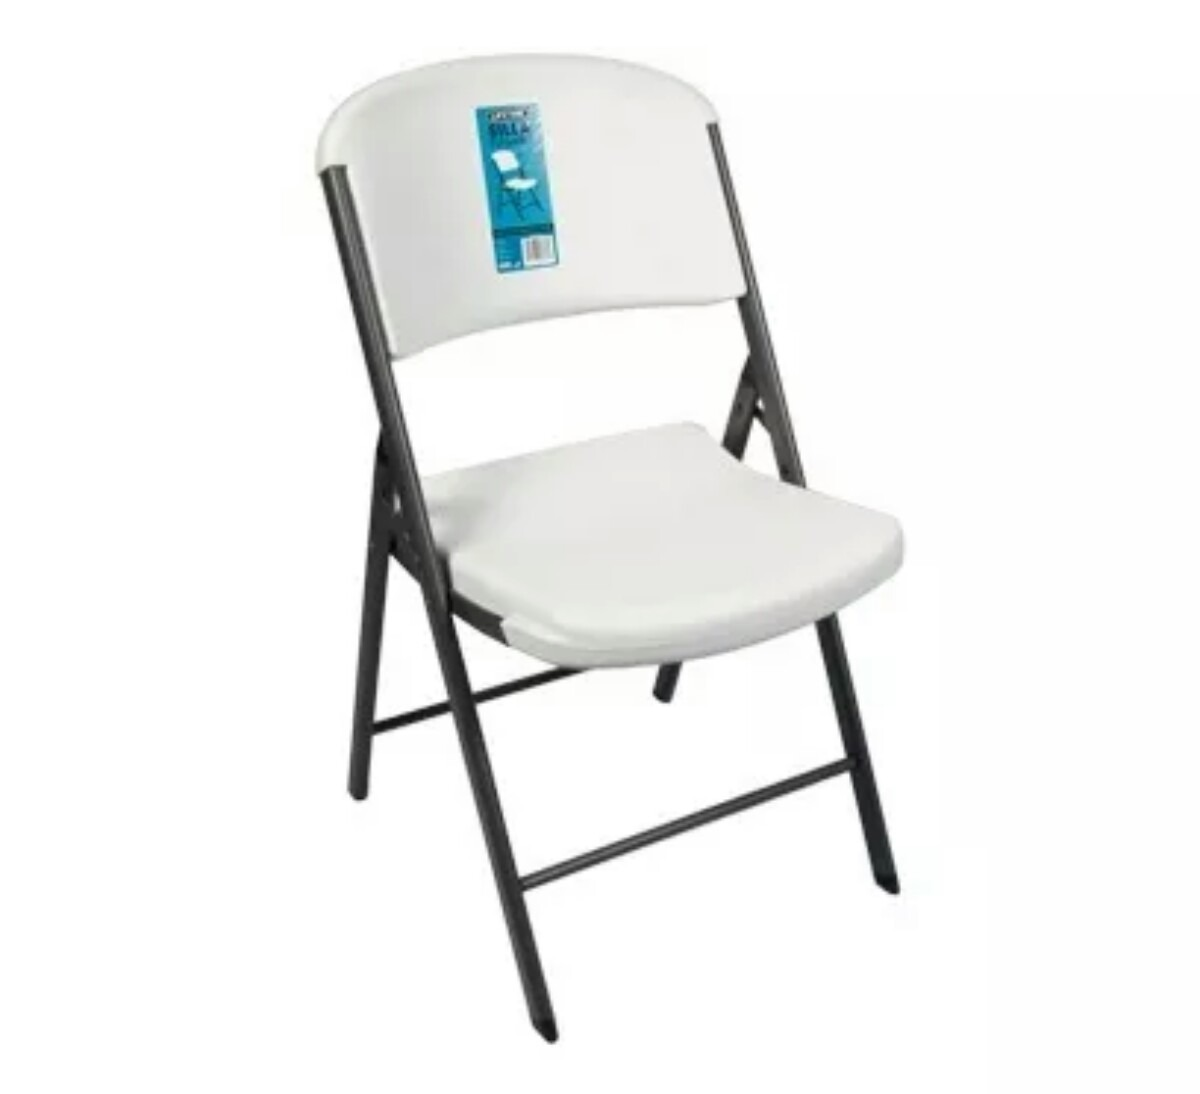 silla plegable de plastico lifetime en mercado